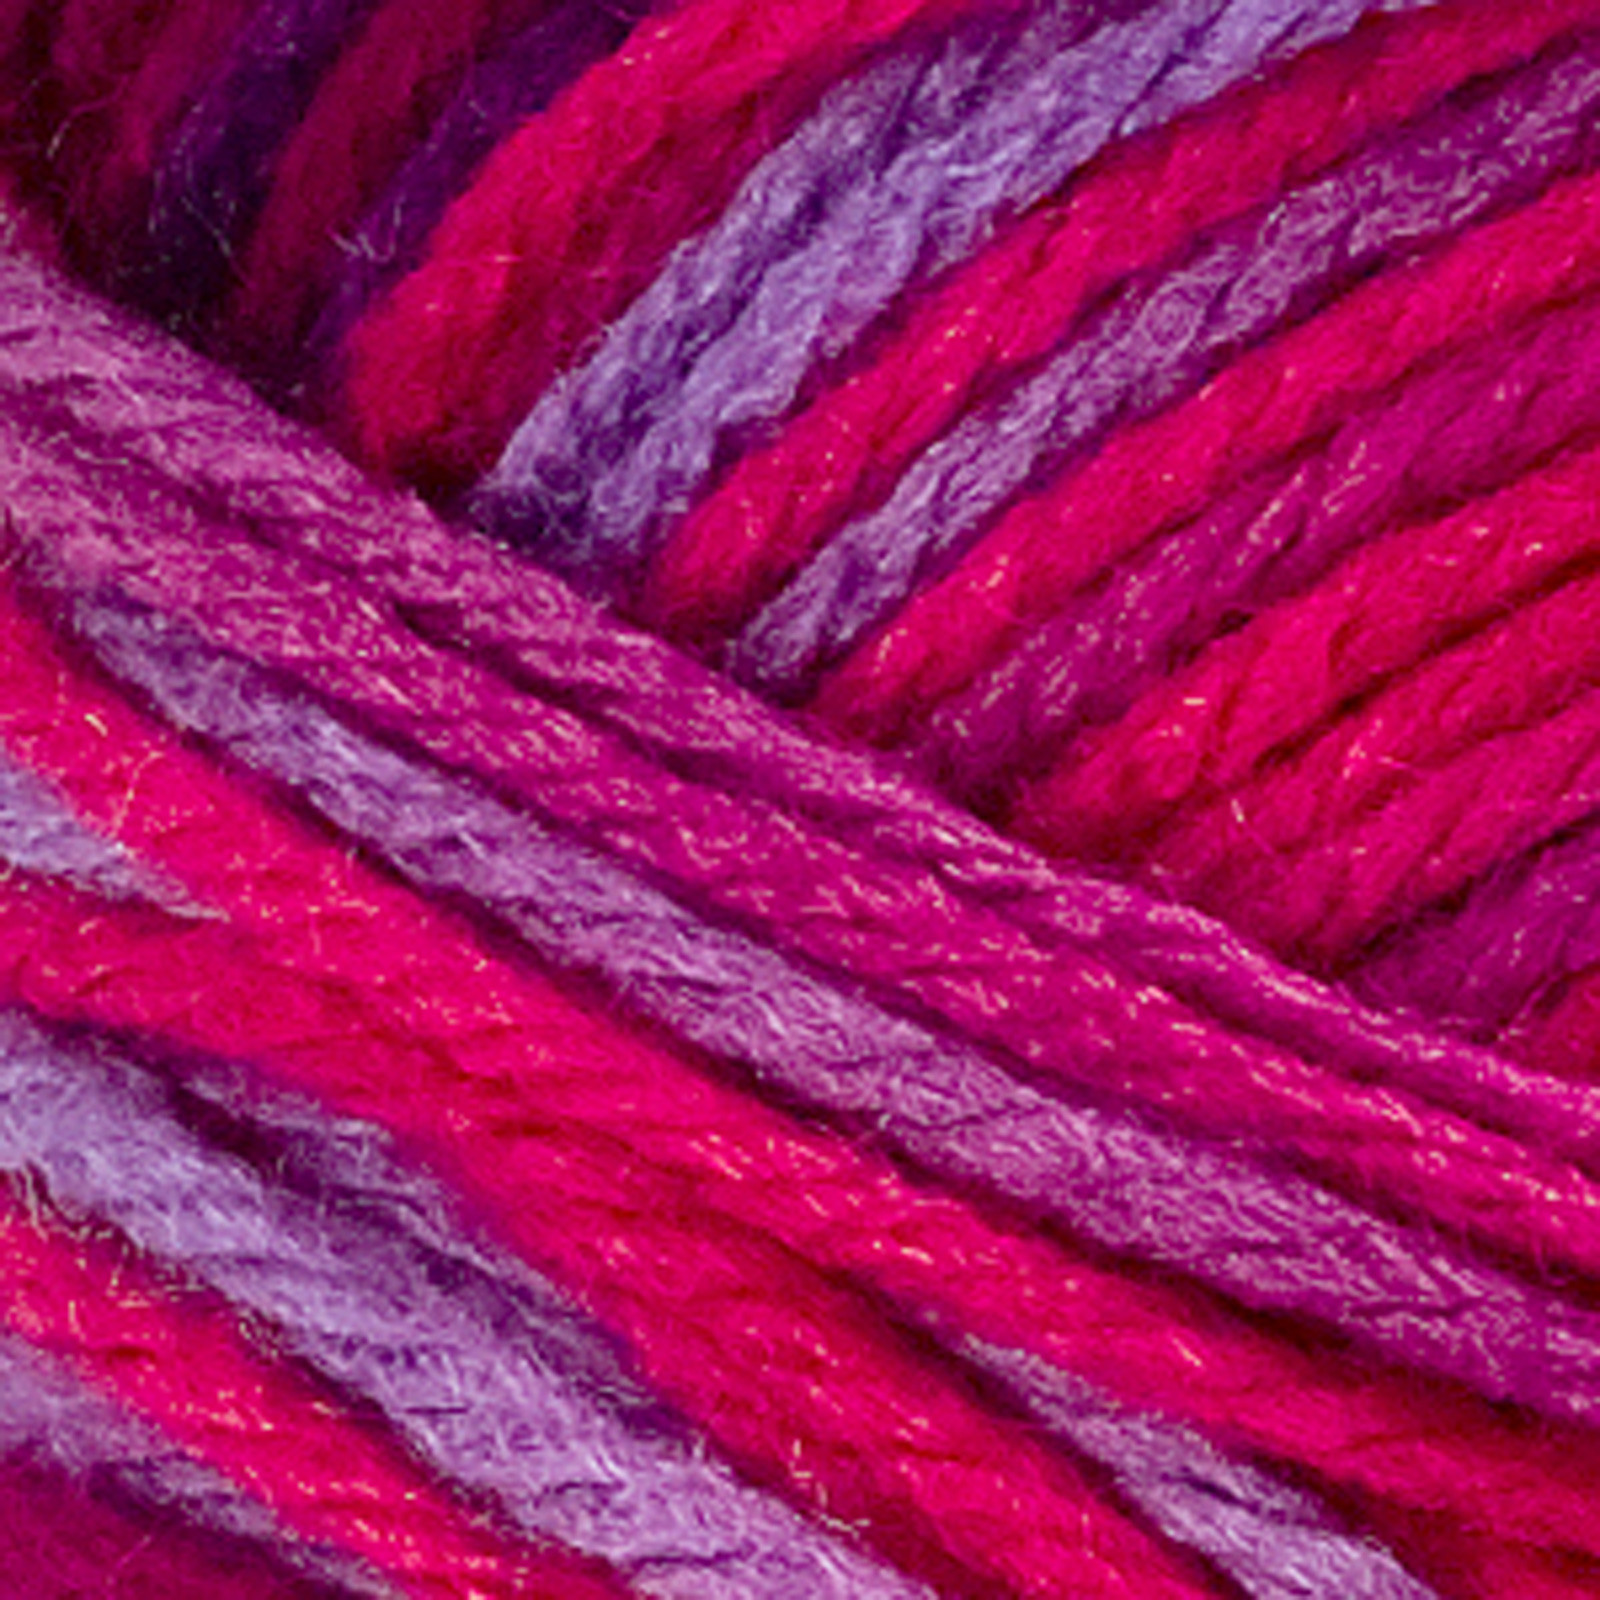 Red Heart Variegated Yarn Unique Red Heart Yarn with Love Variegated 1816 Waterlily Of Luxury 41 Ideas Red Heart Variegated Yarn